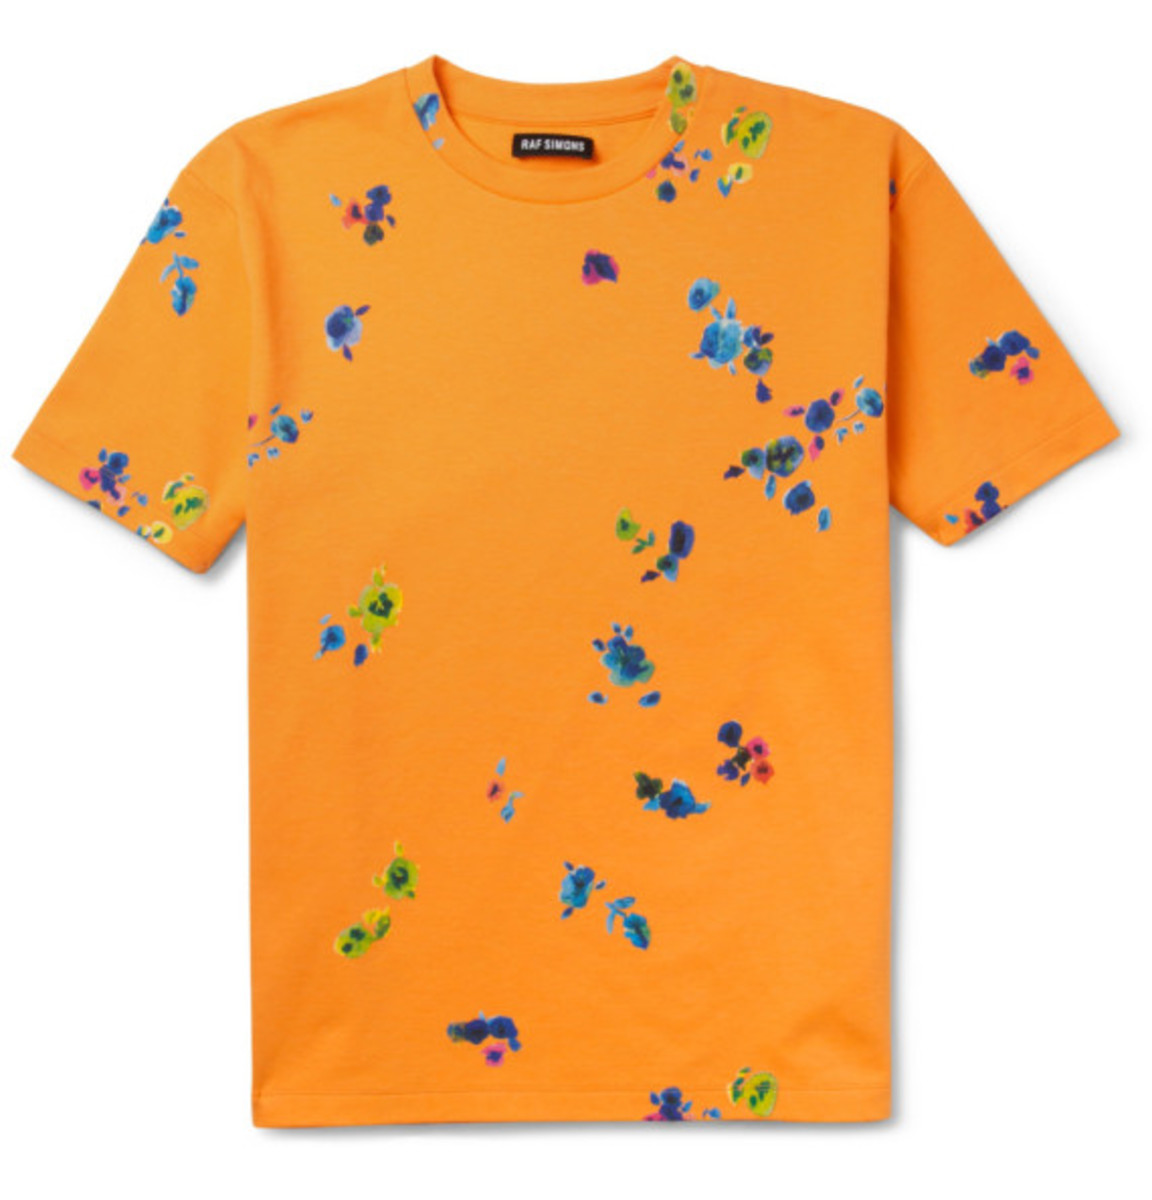 raf-simons-mr-porter-exclusive-flower-print-cotton-t-shirt-07